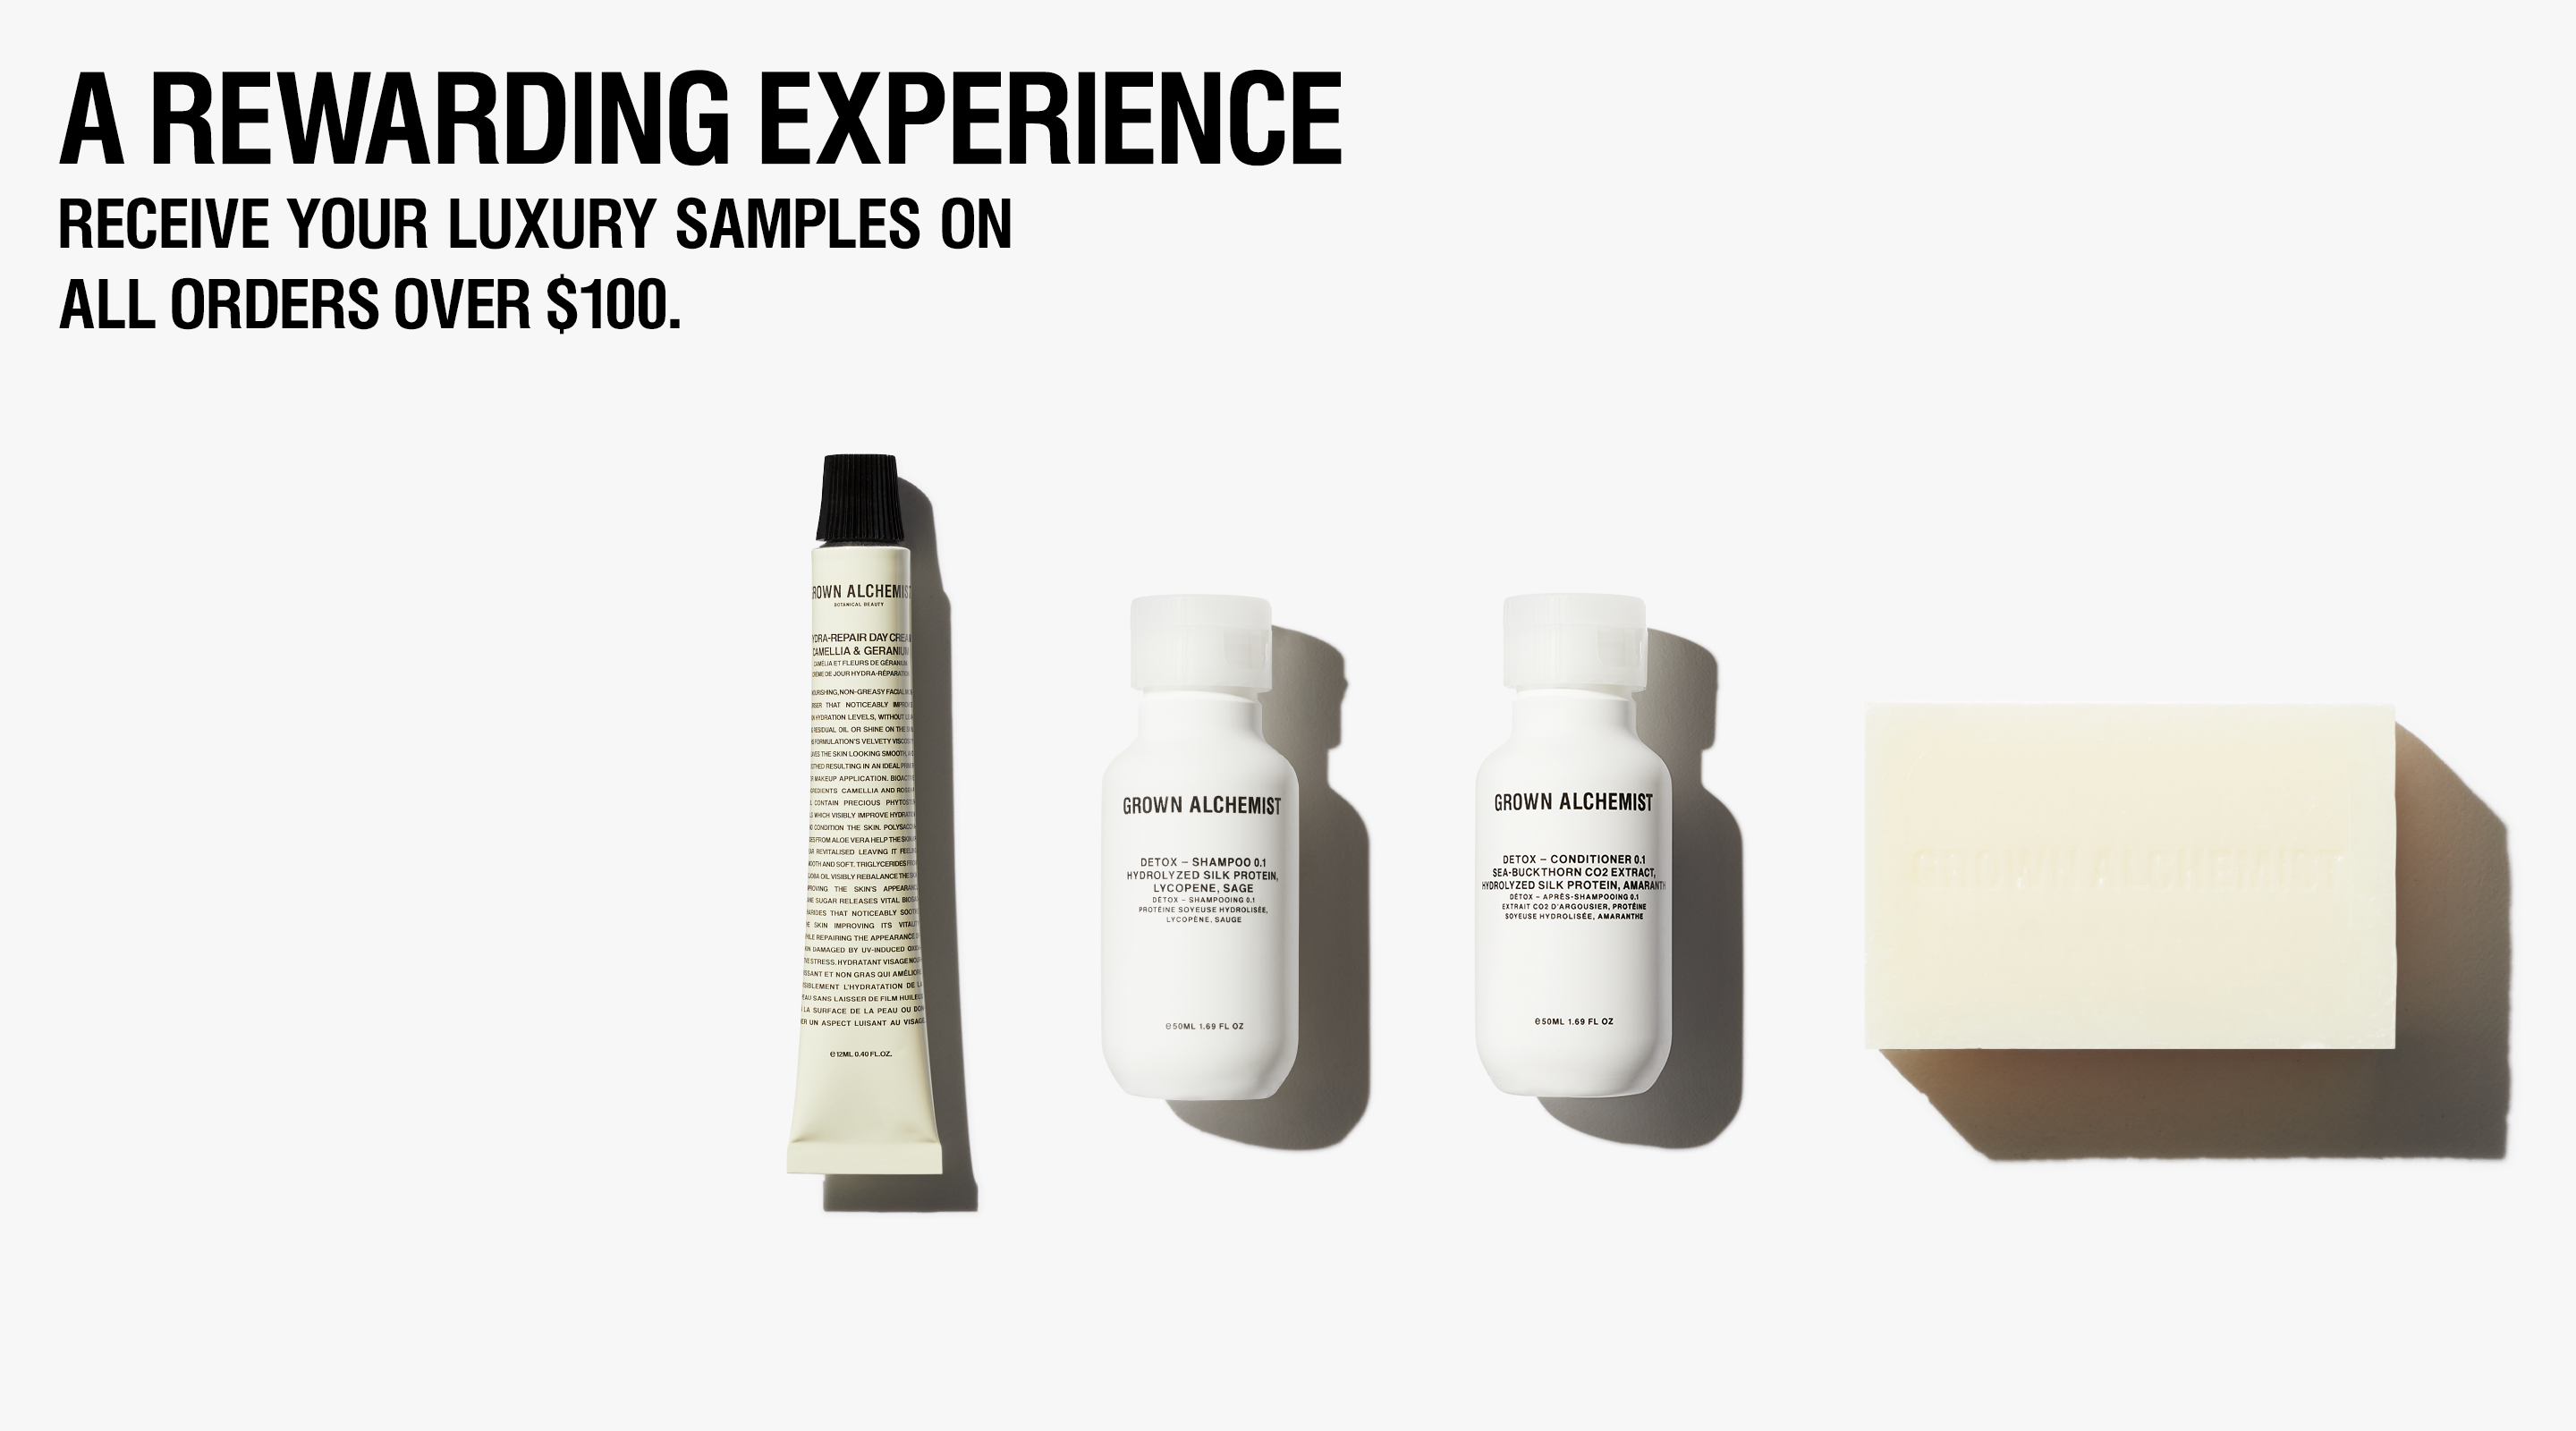 Grown Alchemist Complimentary samples on orders over $100